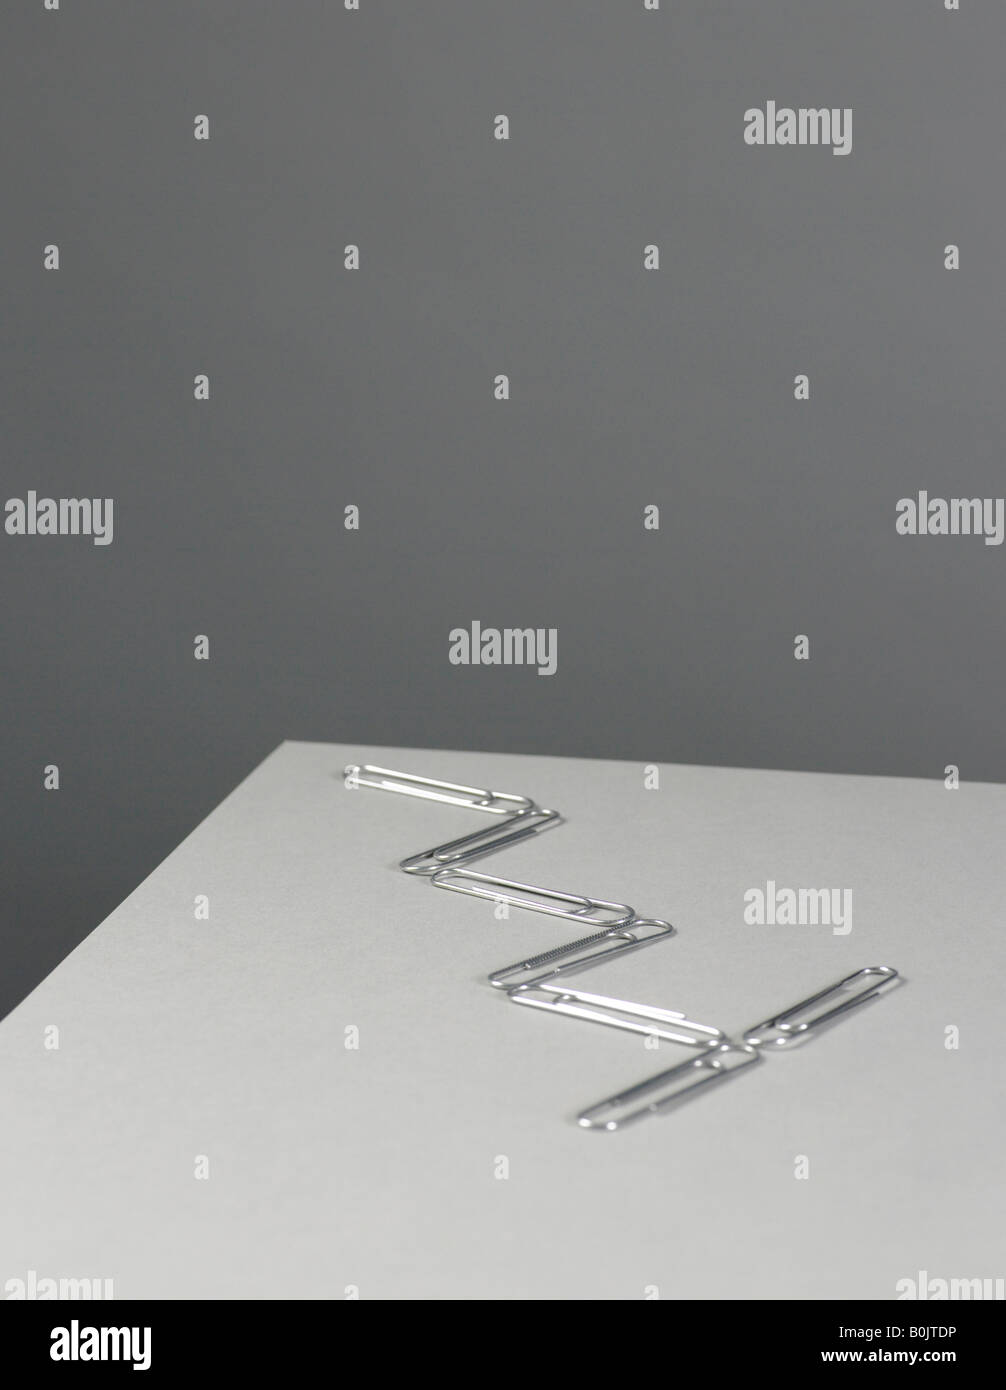 paper clips on grey background - Stock Image